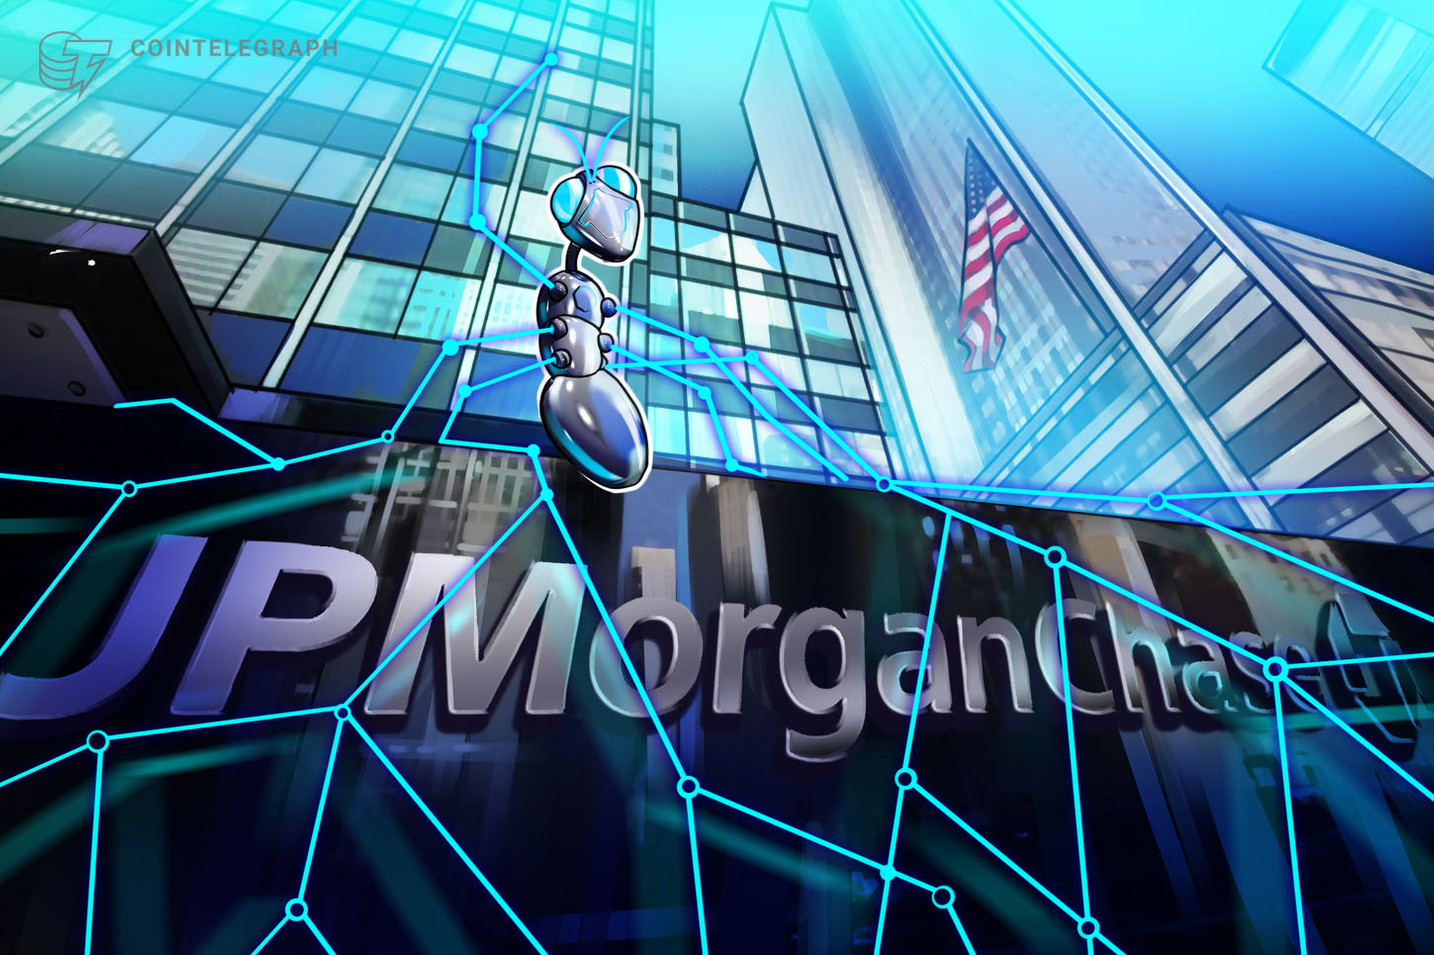 JPMorgan Continues to Explore Blockchain for Cross-Border Payments, Having Signed 220 Banks Worldwide Along the Way